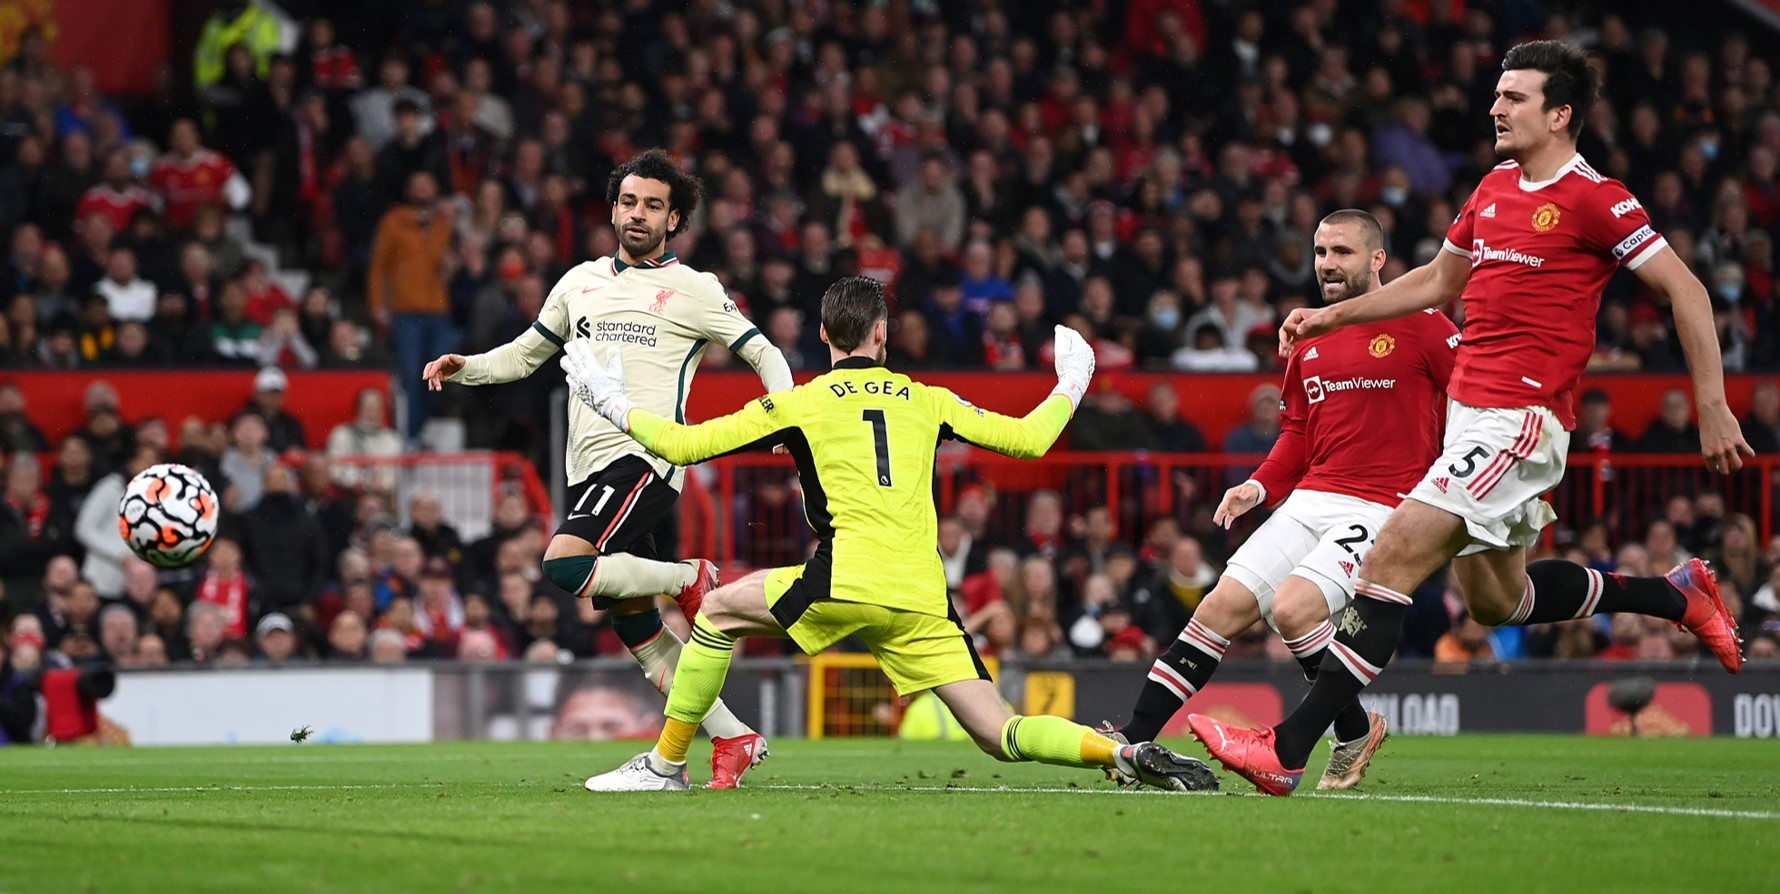 Only one Manchester United player has more goals than Mo Salah at Old Trafford this calendar year